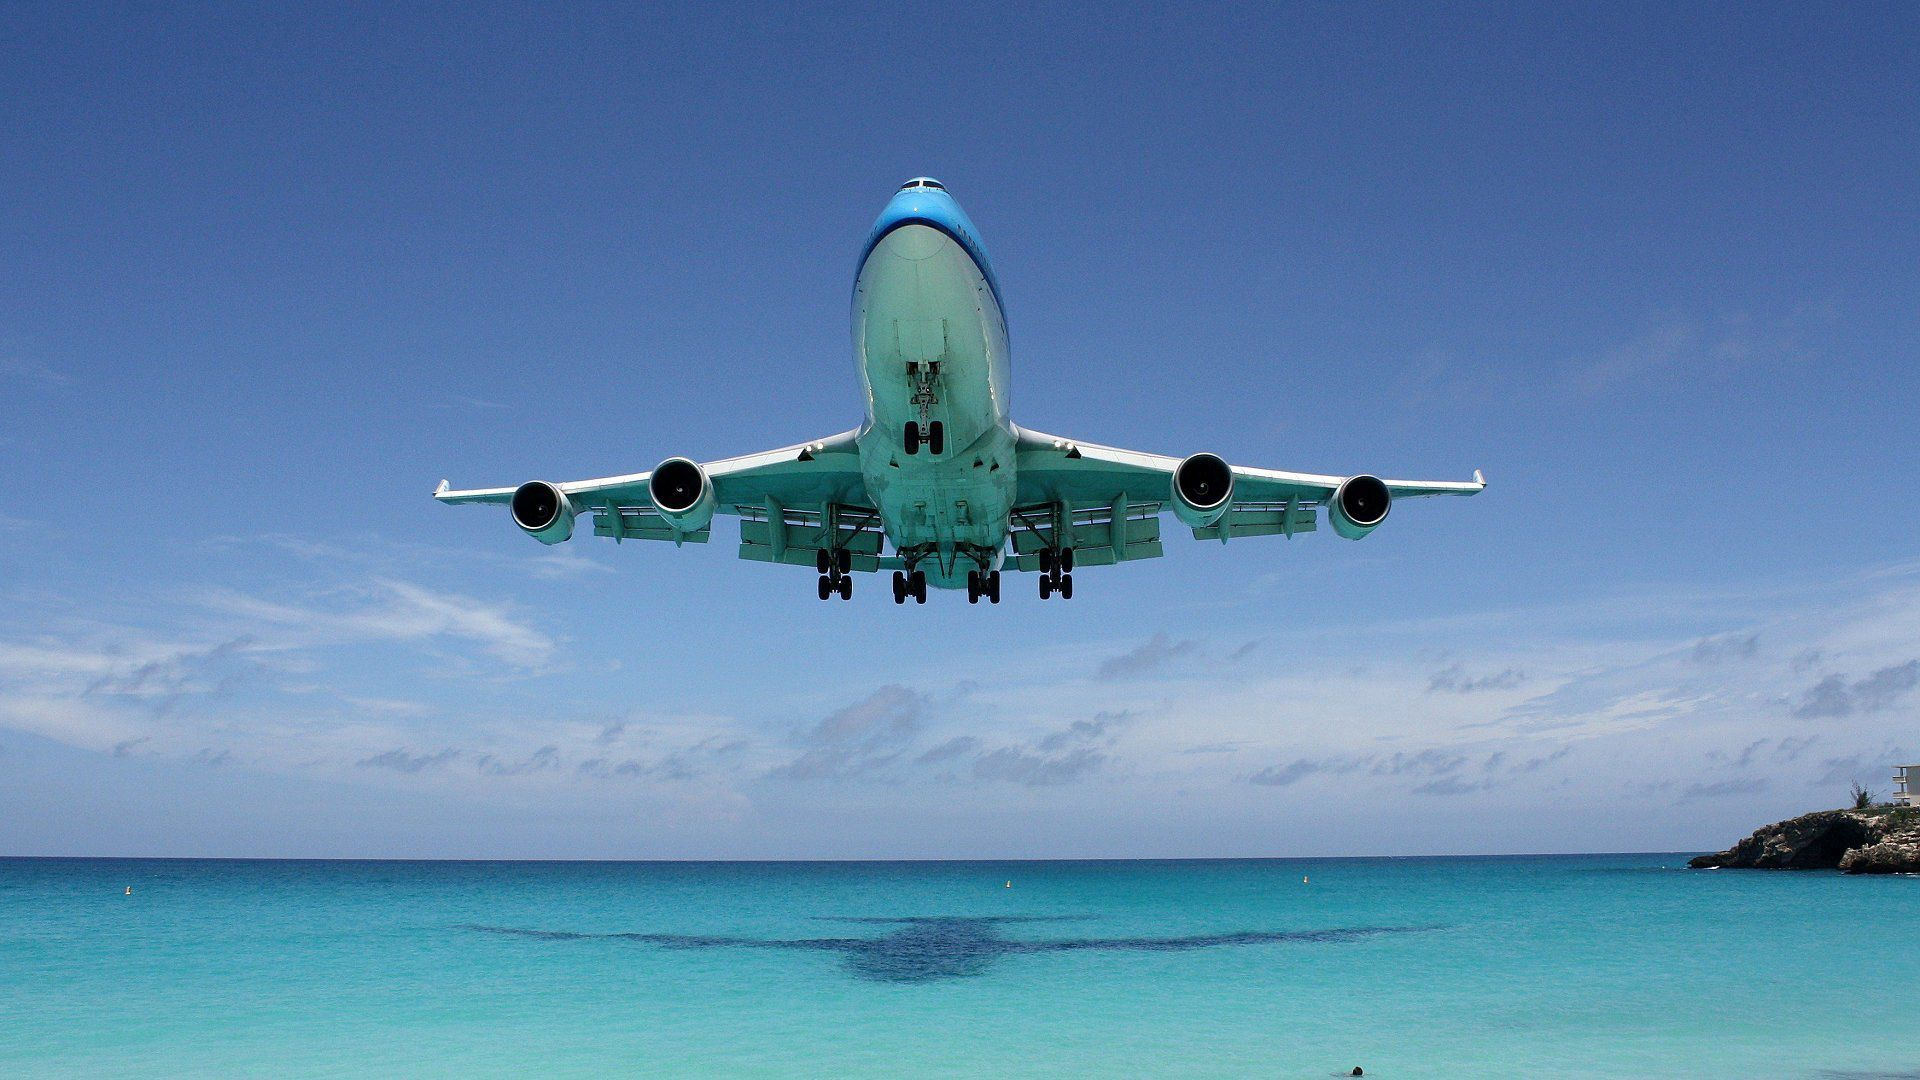 100517 download wallpaper Miscellanea, Miscellaneous, Ocean, Shadow, Flight, Boeing 747 screensavers and pictures for free